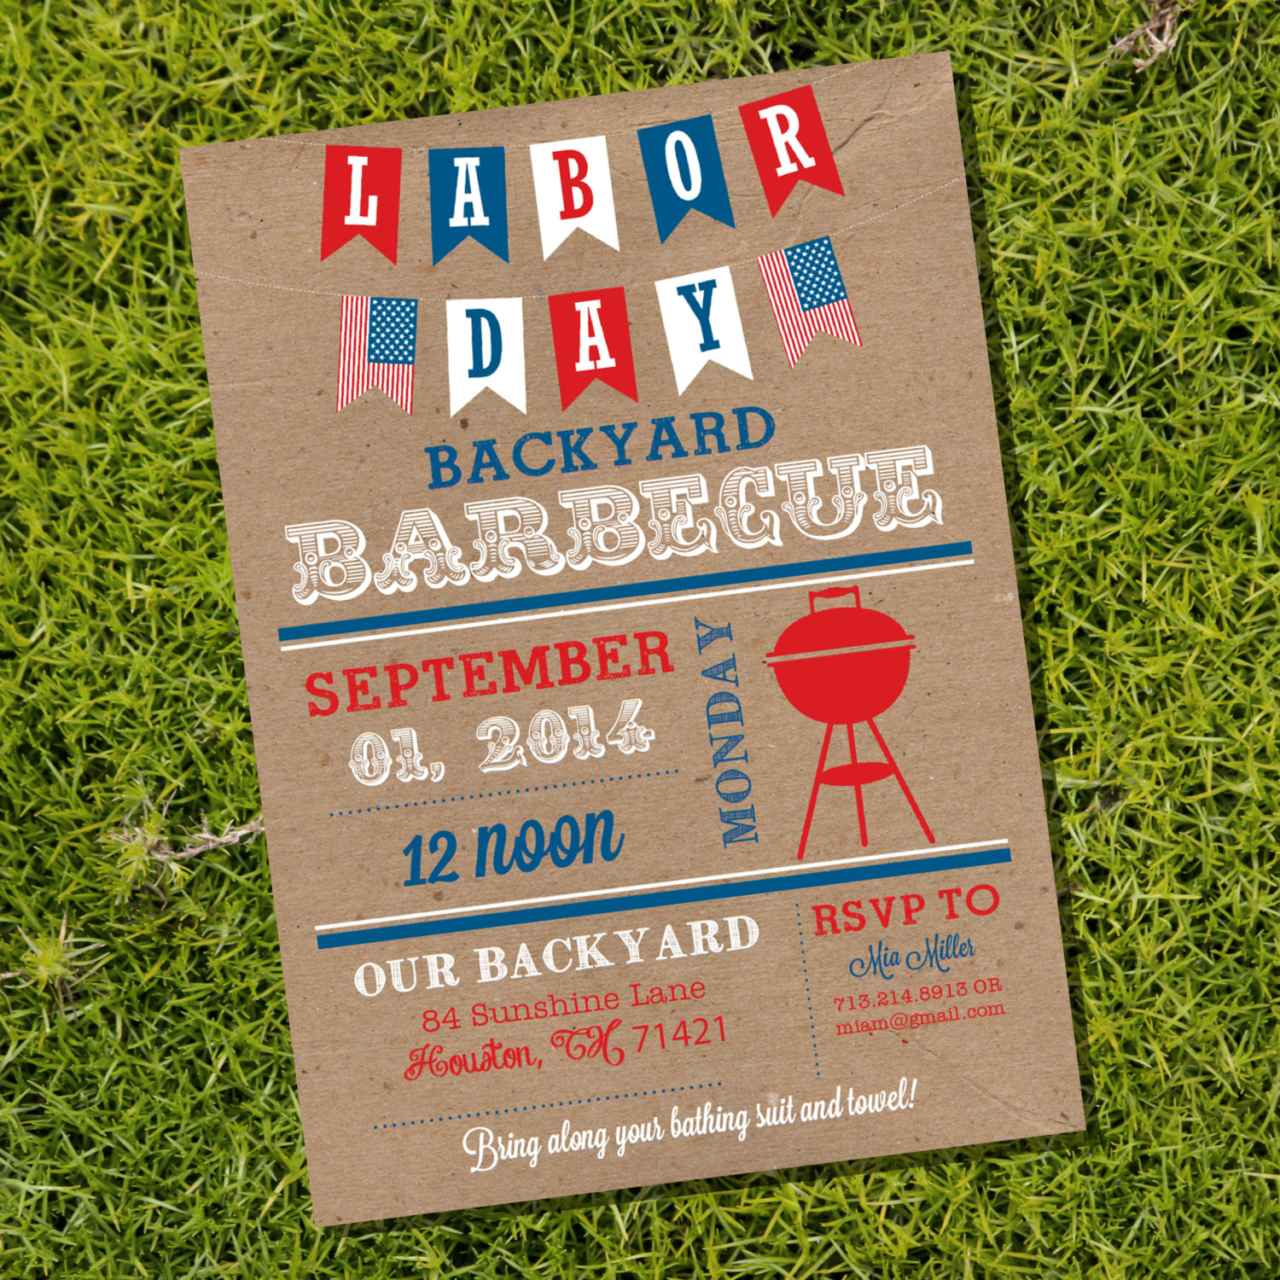 labor day bbq invitation with banners 1280x1280